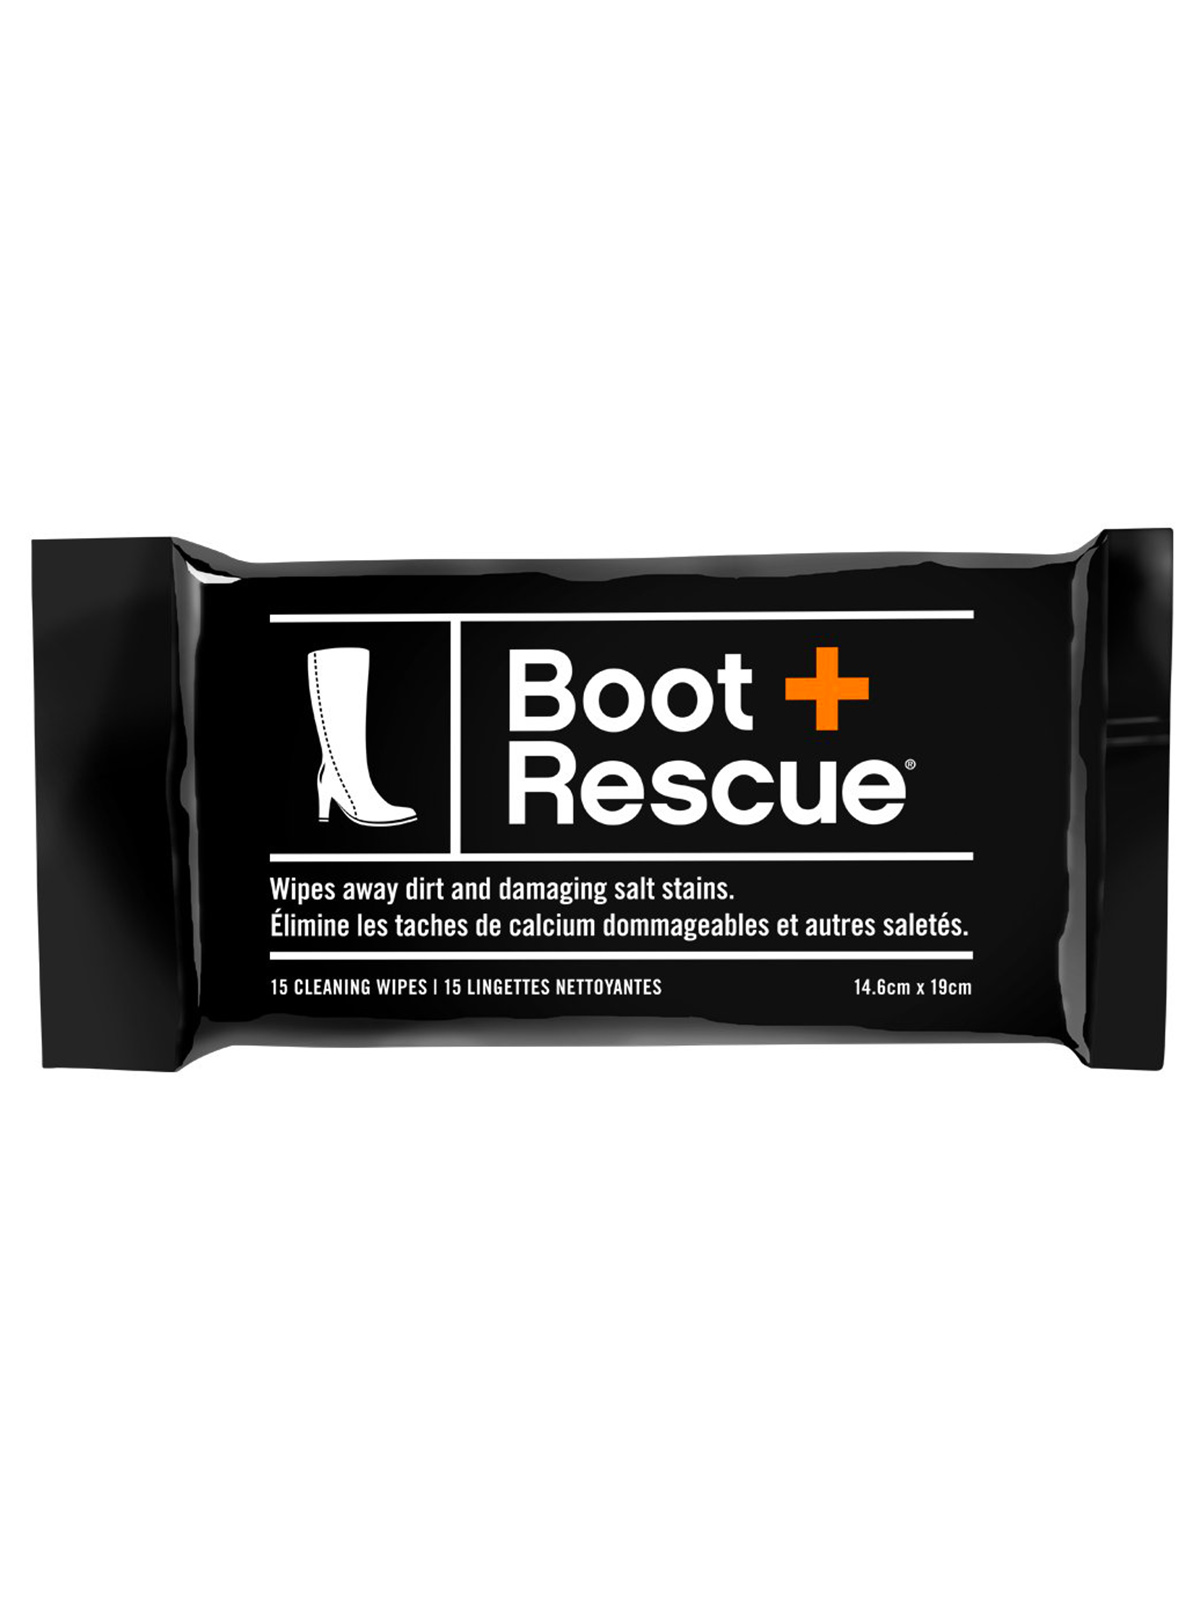 Best Mini Travel Stain Removers, Boot Rescue Leather Wipes